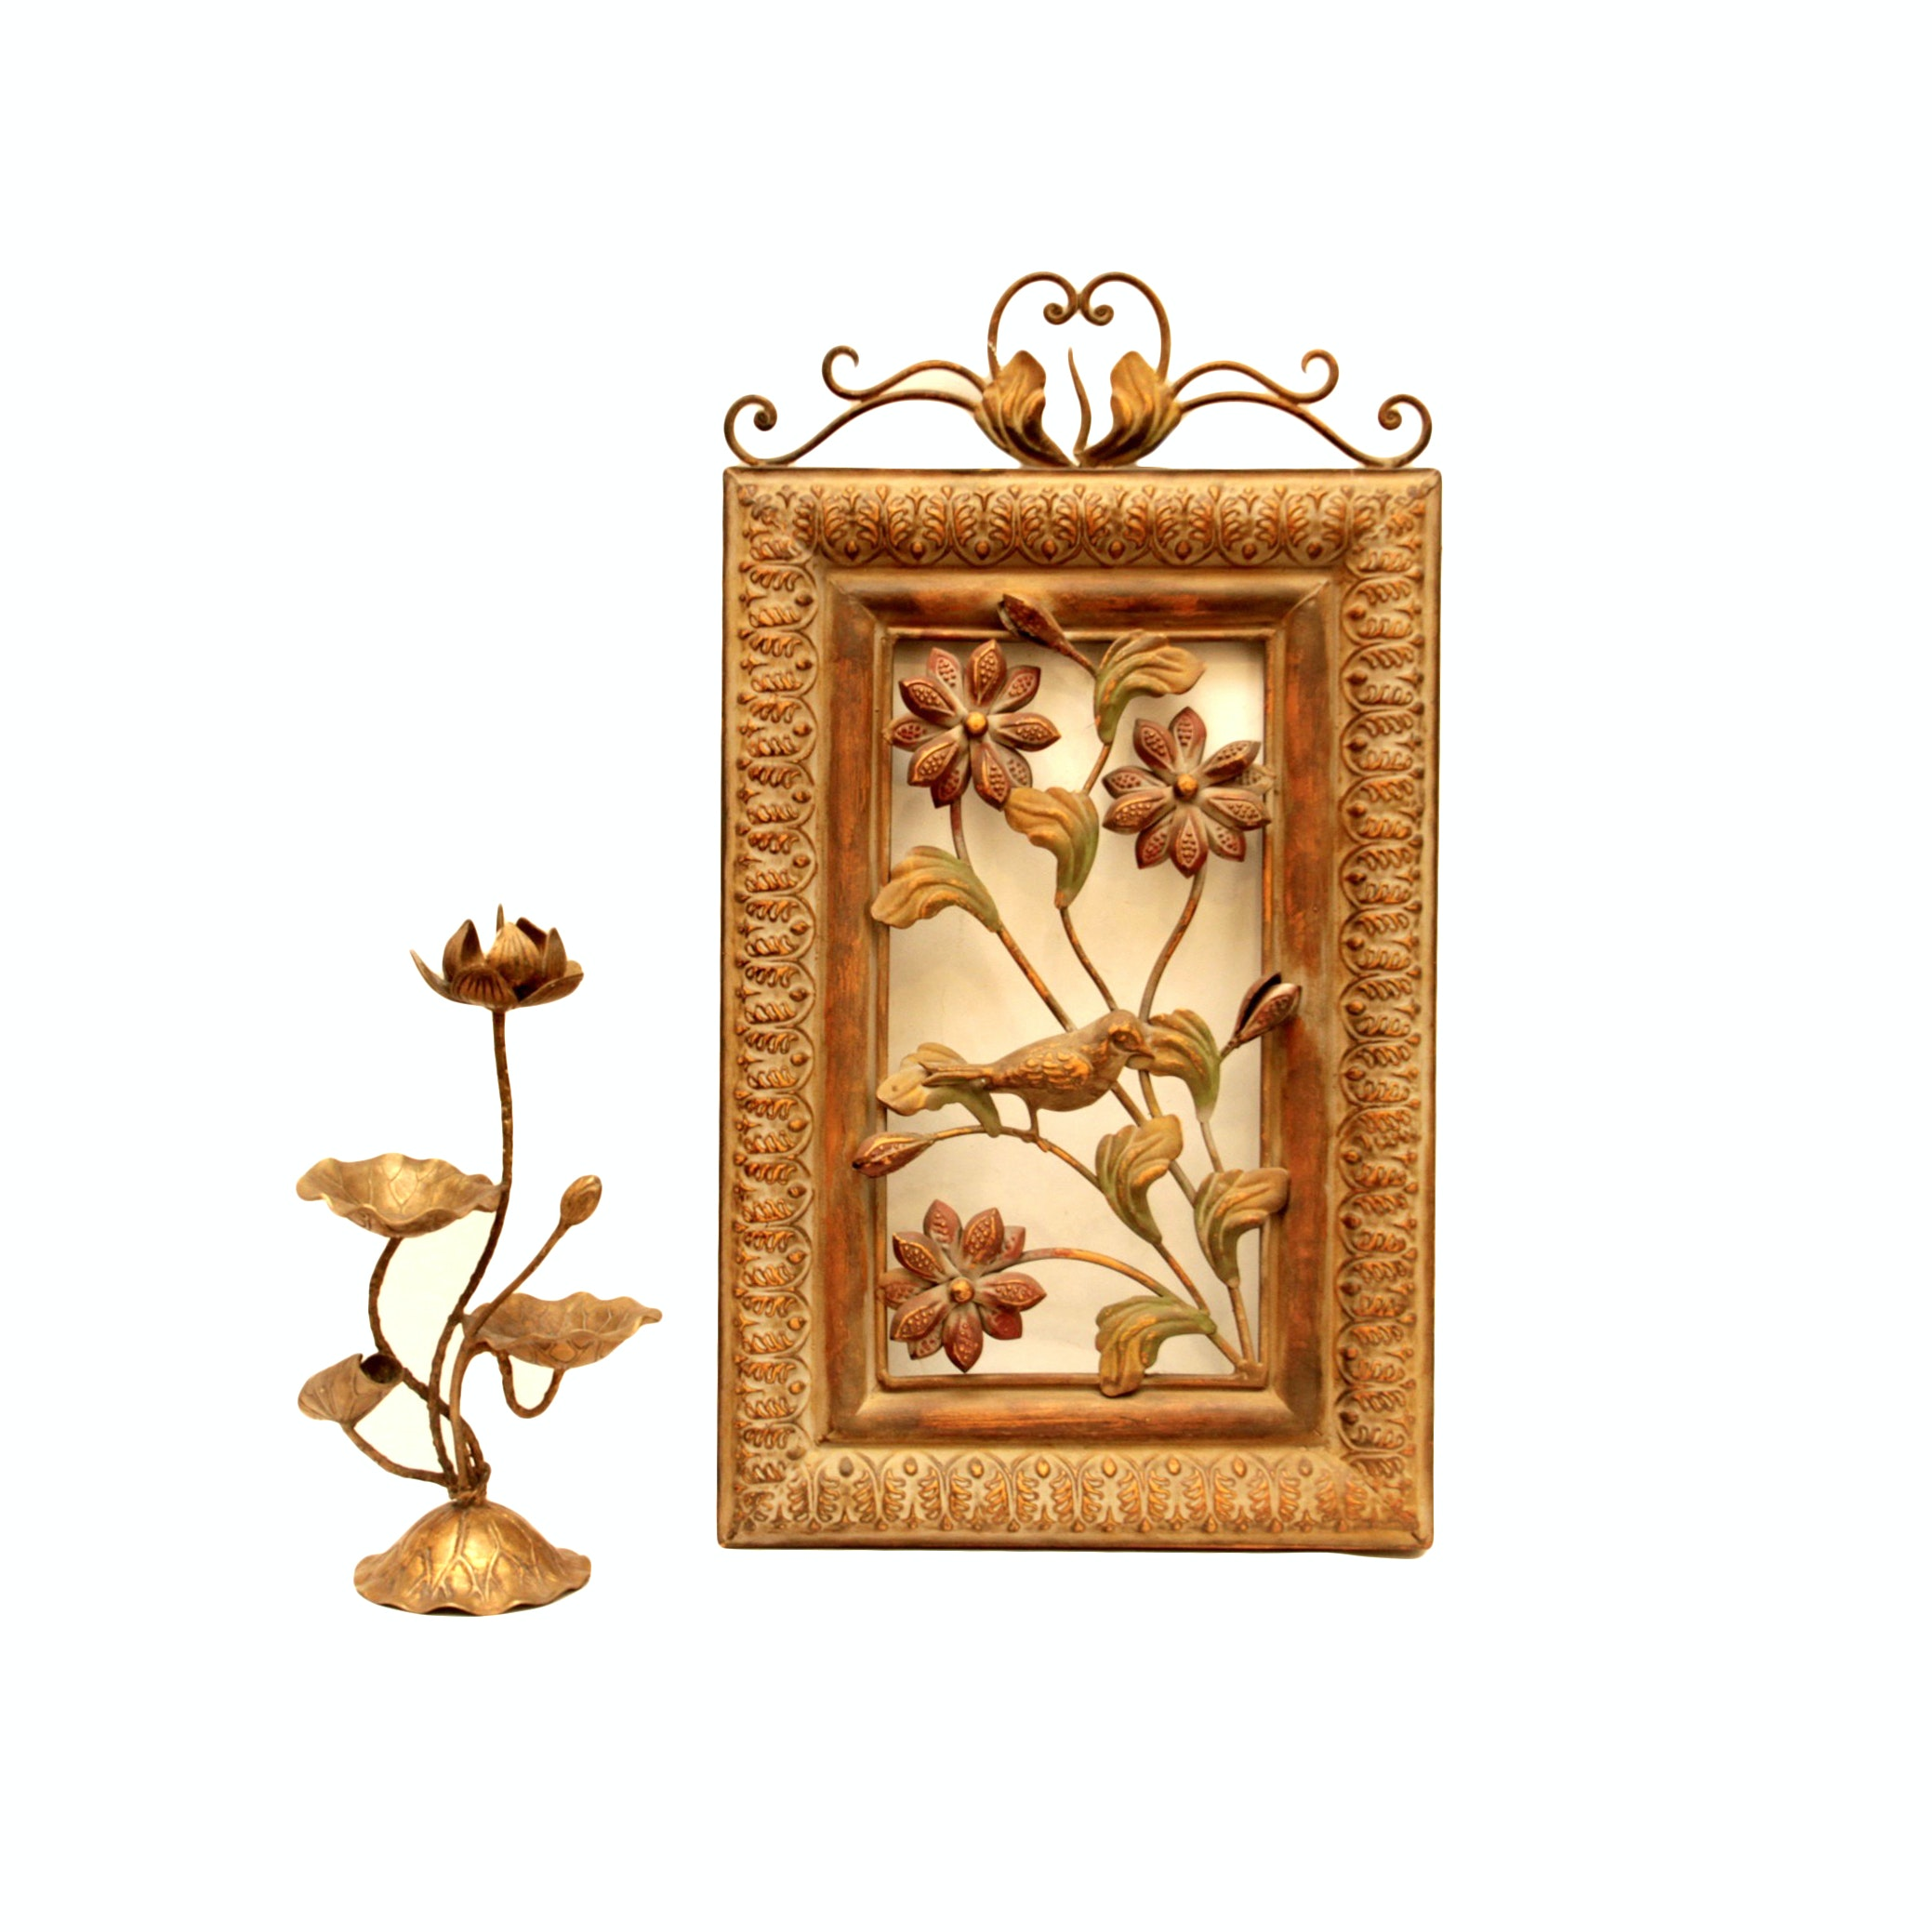 Metal Wall Decor and Garniture with Floral Theme